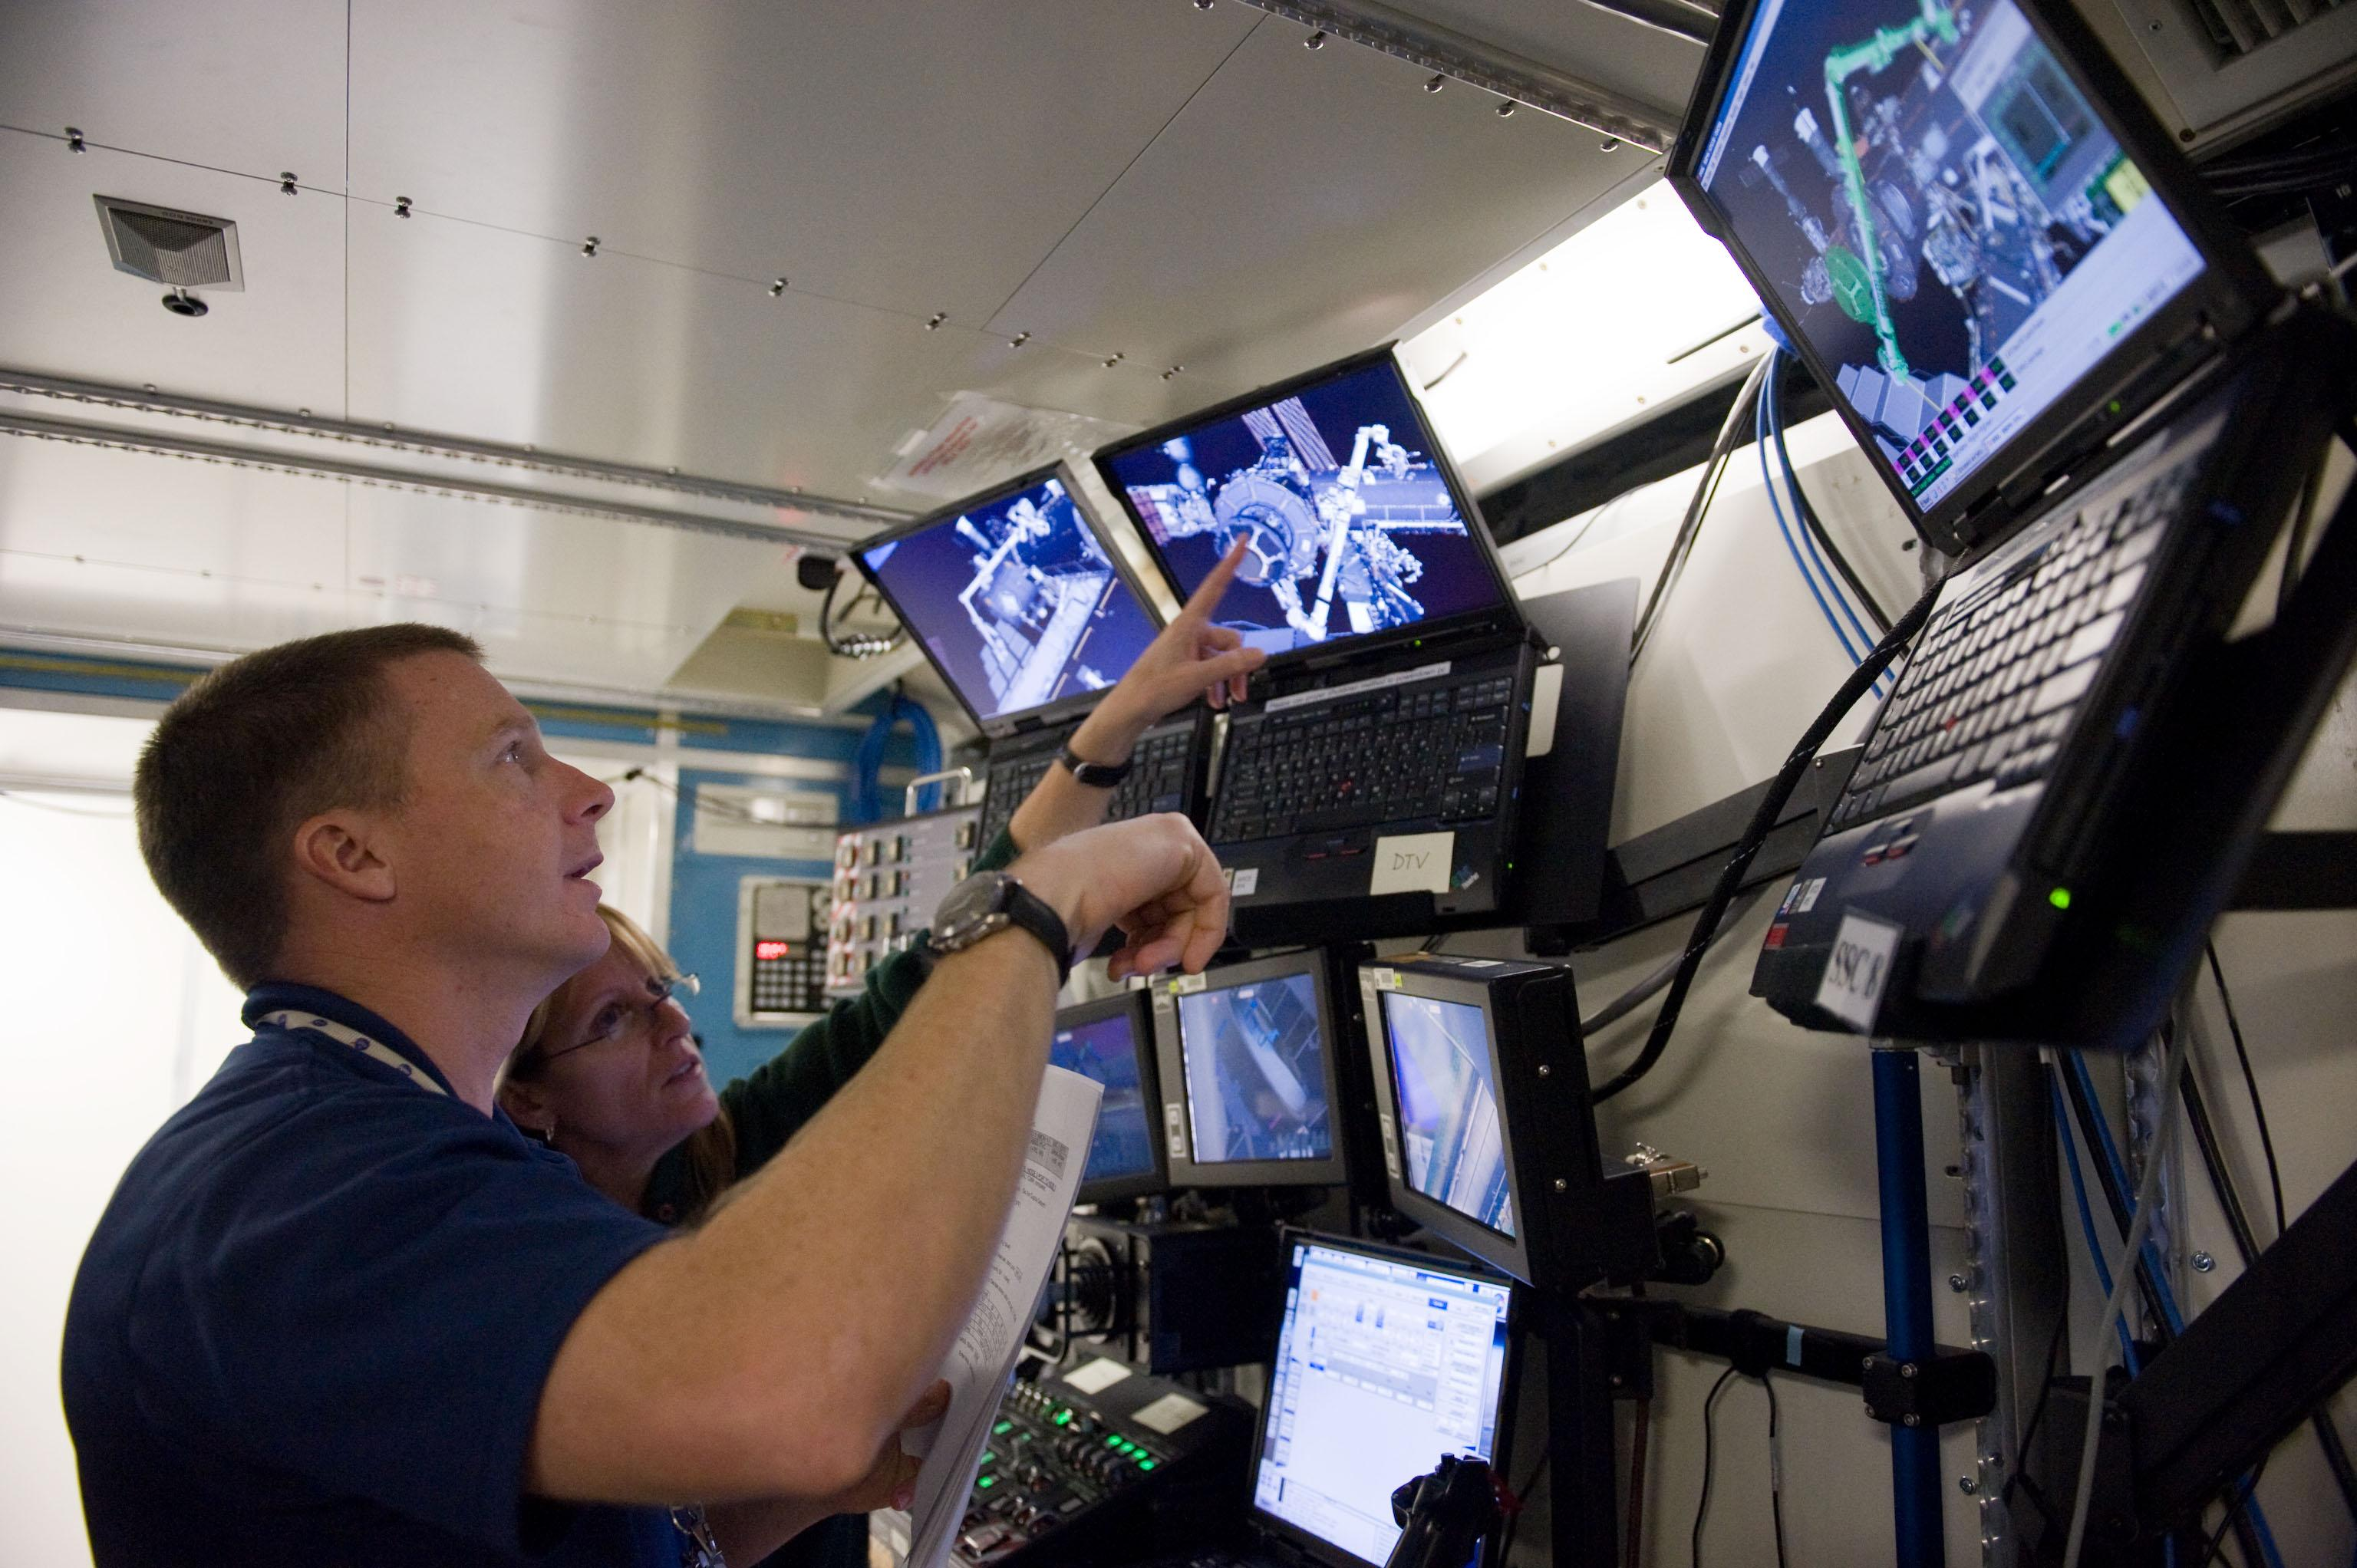 astronaut robotics training